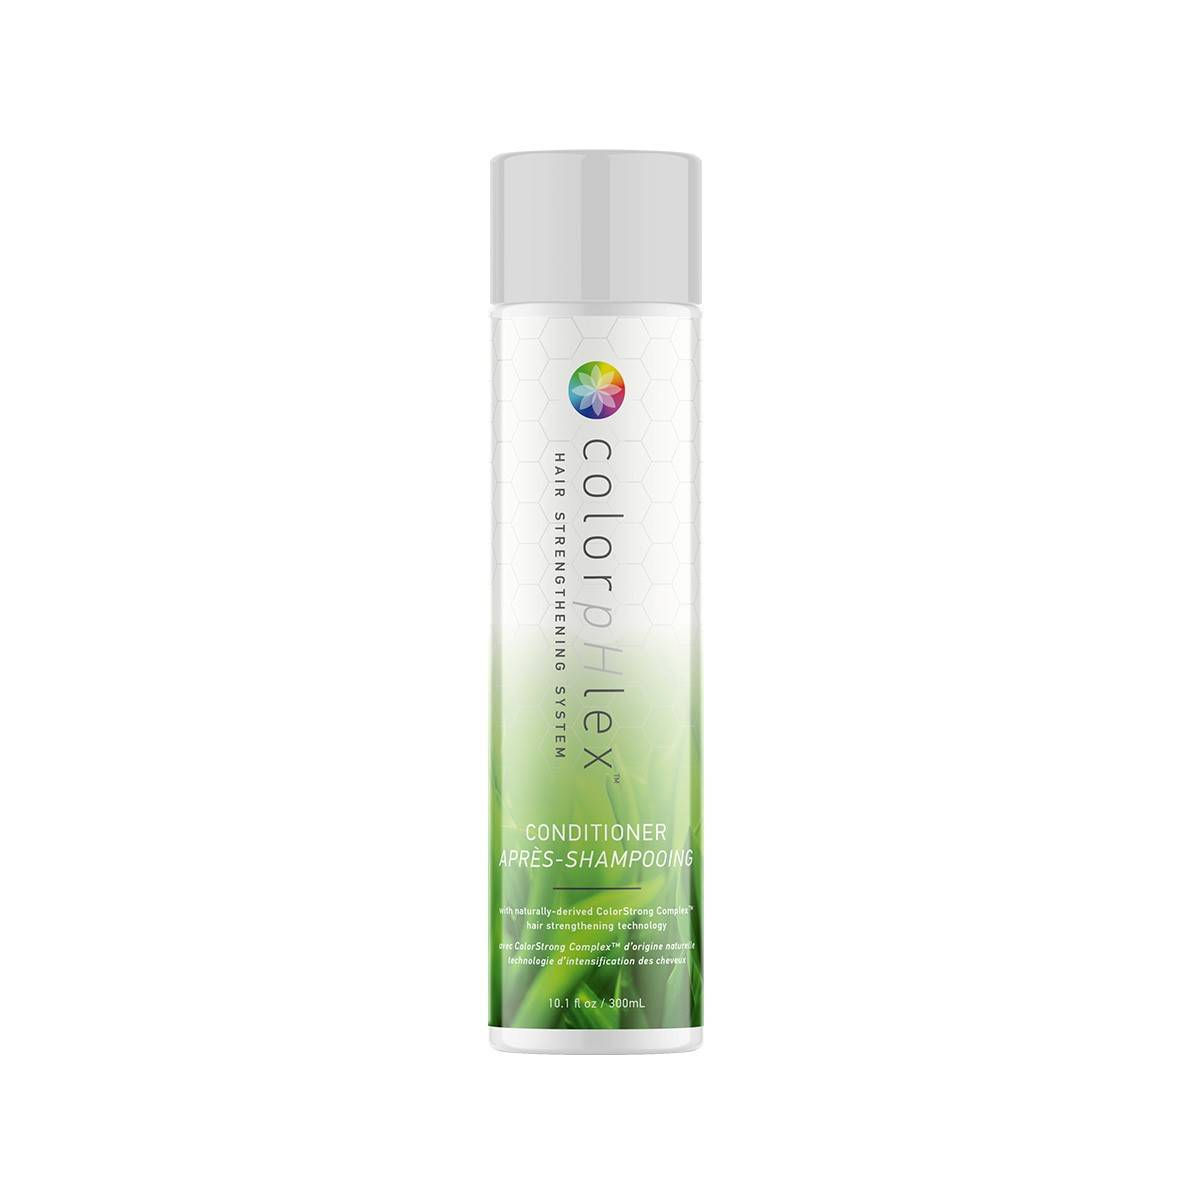 Colorphlex Conditioner 300ml